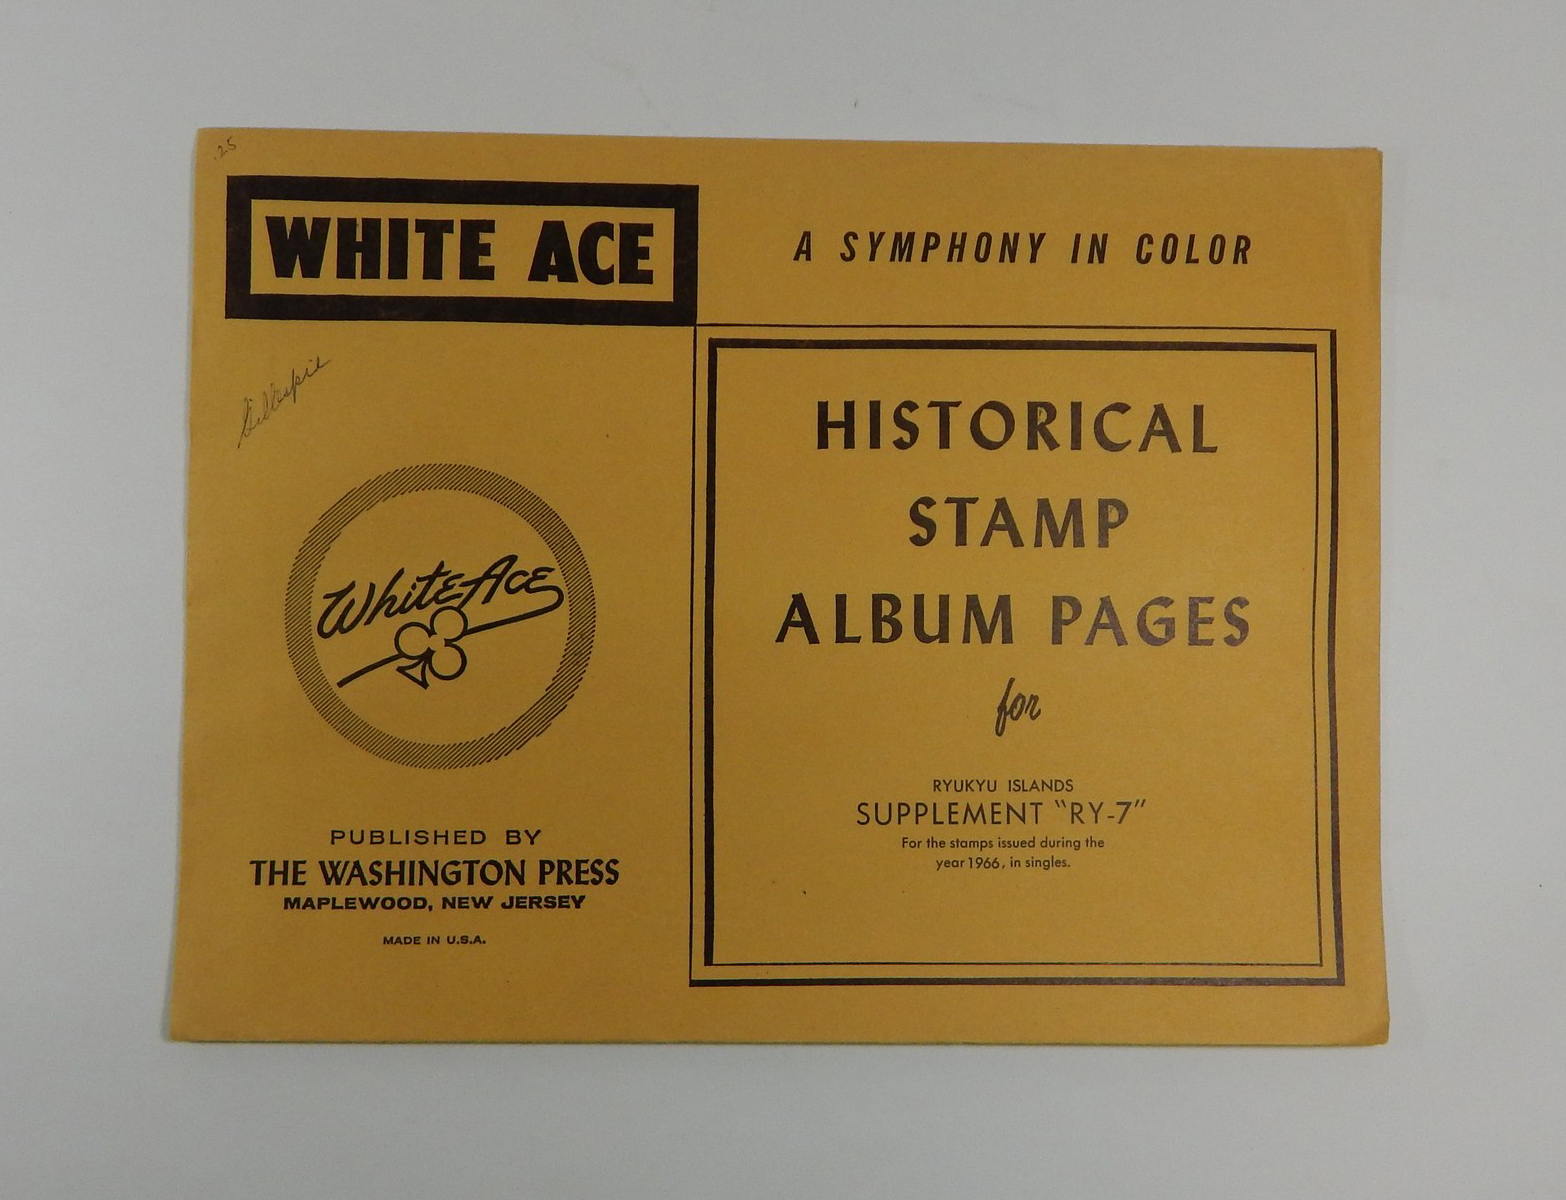 """White Ace Ryukyu Islands Supplement """"RY-7"""" 1966 Historical Stamp Album Pages"""